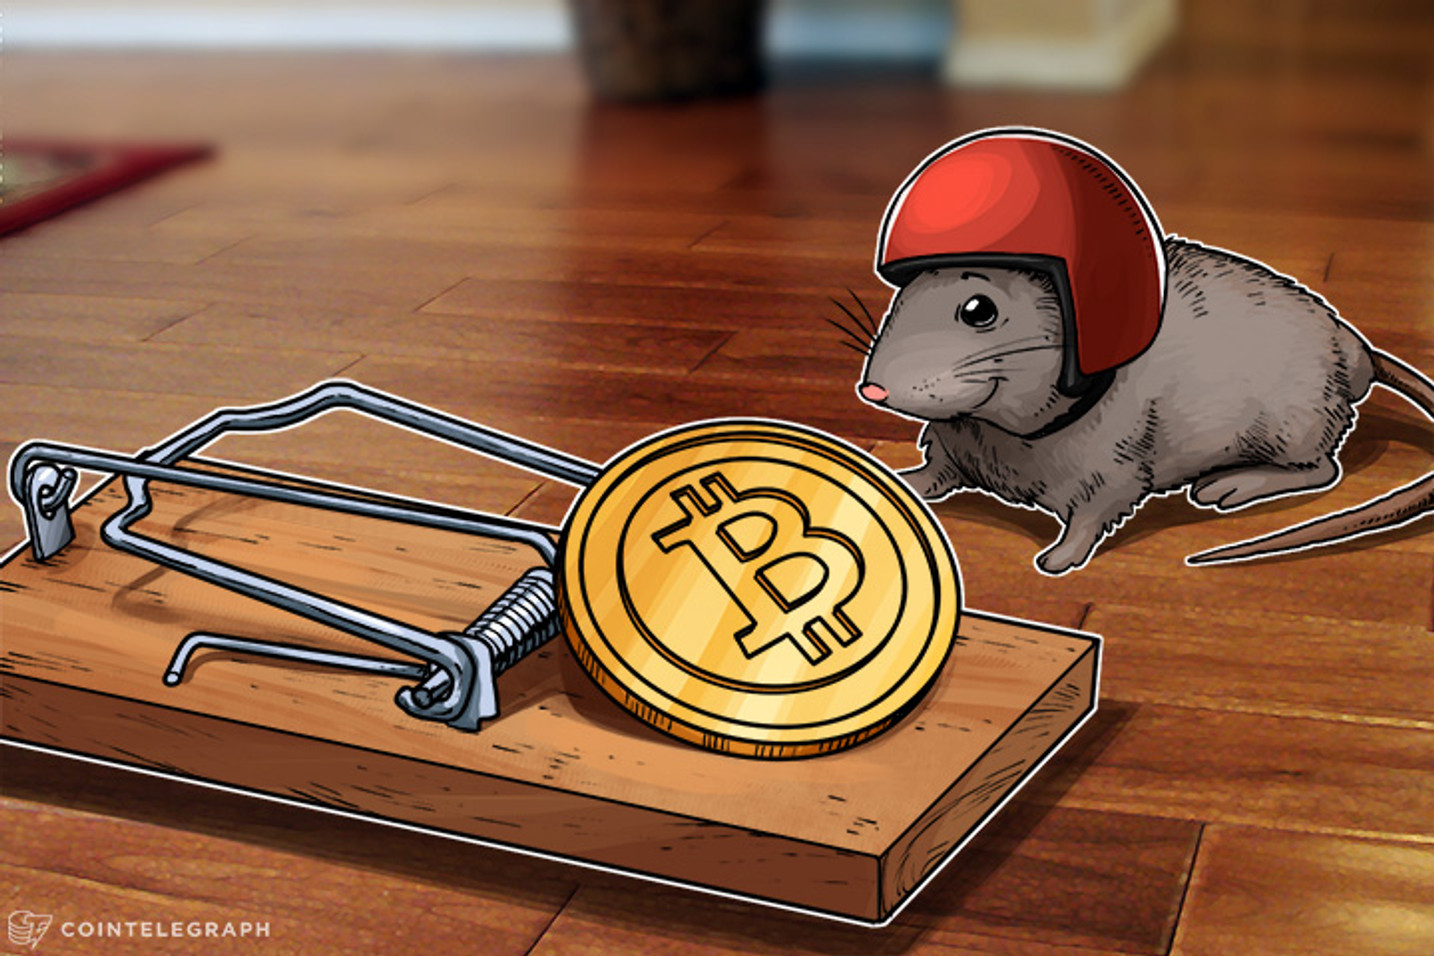 Chinese Traders Create Lopsided Bitcoin Market, Investors Ready to Take Higher Risks